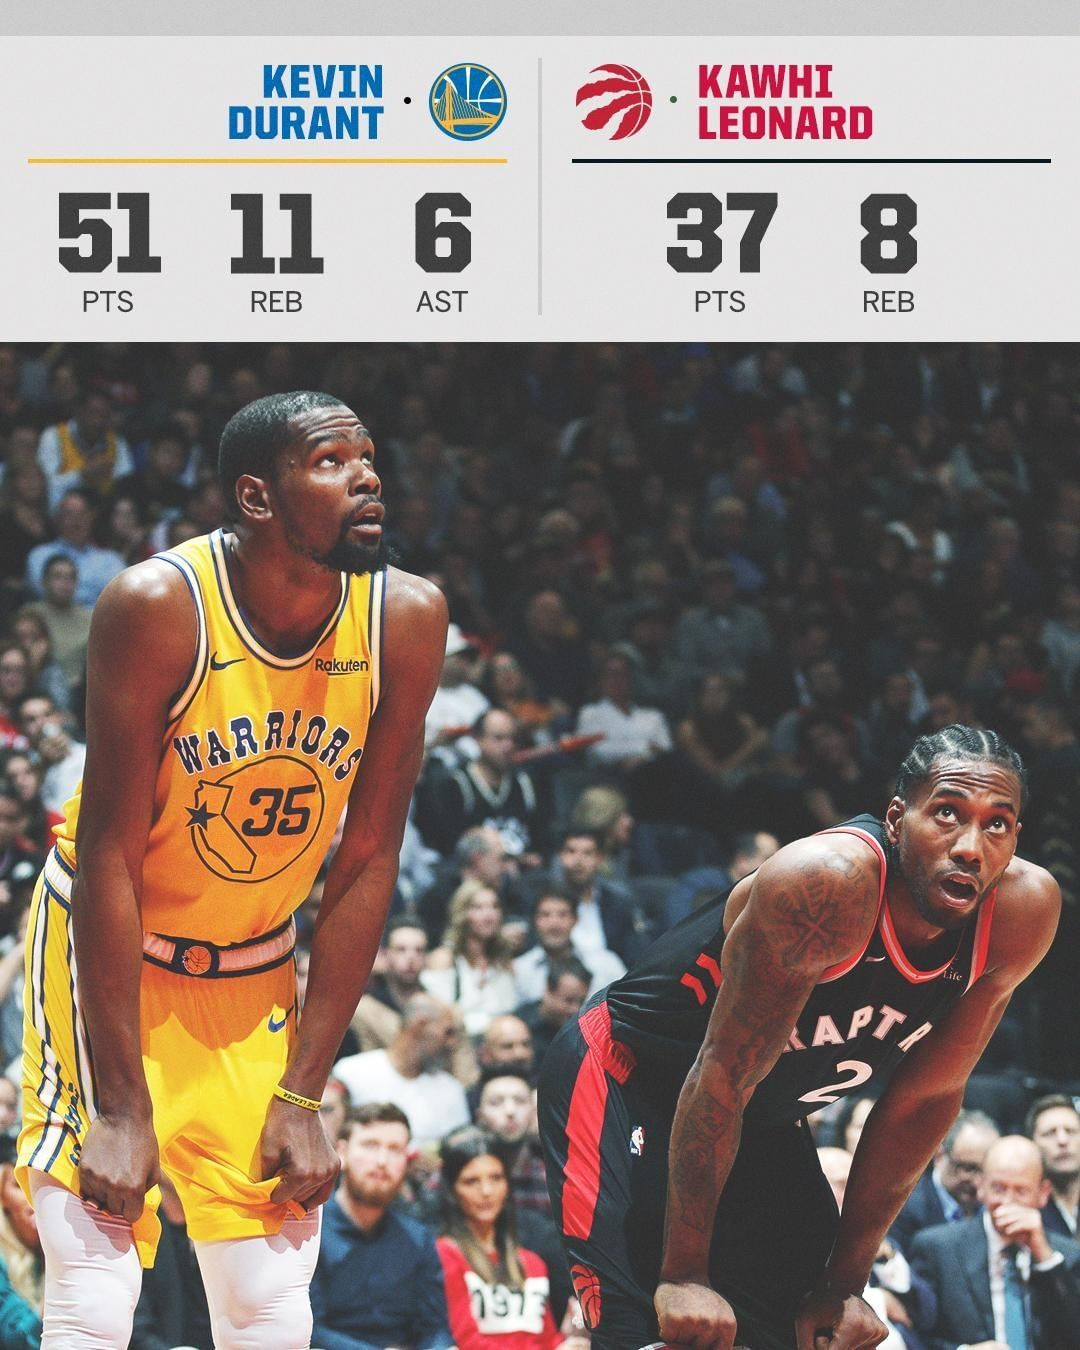 b5e6db2a91a0 Crazy game and stats by both Kawhi Leonard and Kevin Durant in an epic  overtime win by the Raptors over the Warriors. 🔥